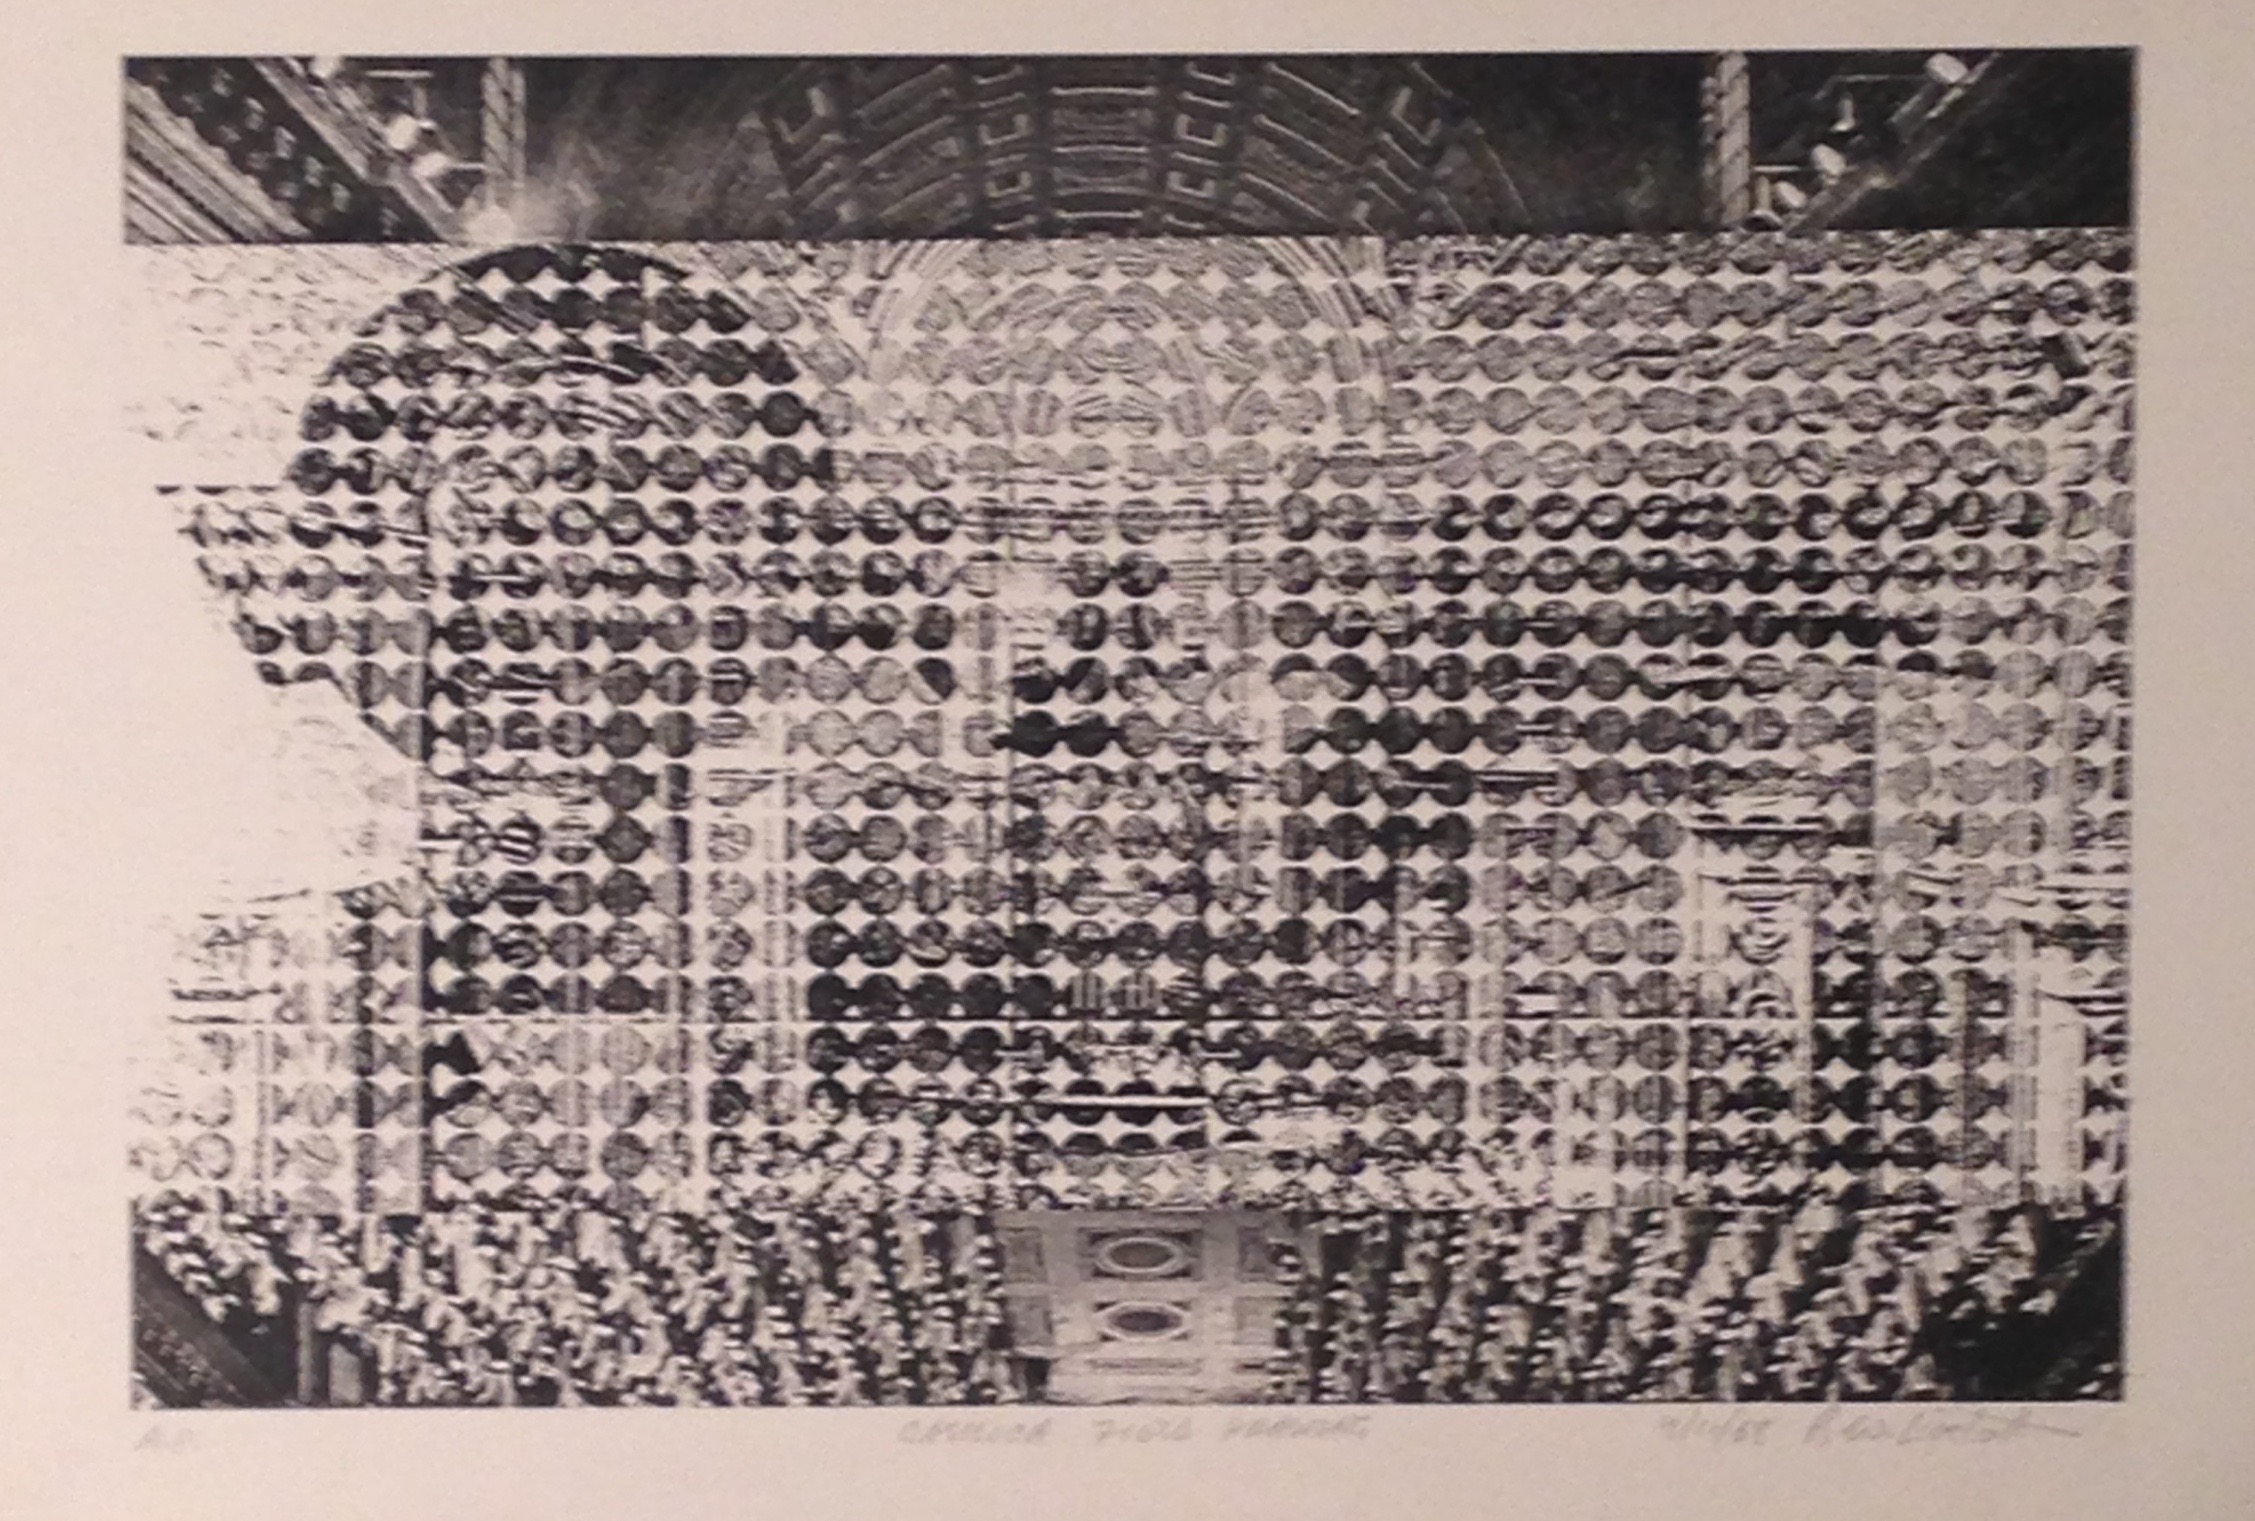 Wayne Eastcott, Basilica Field Drawing, 1968